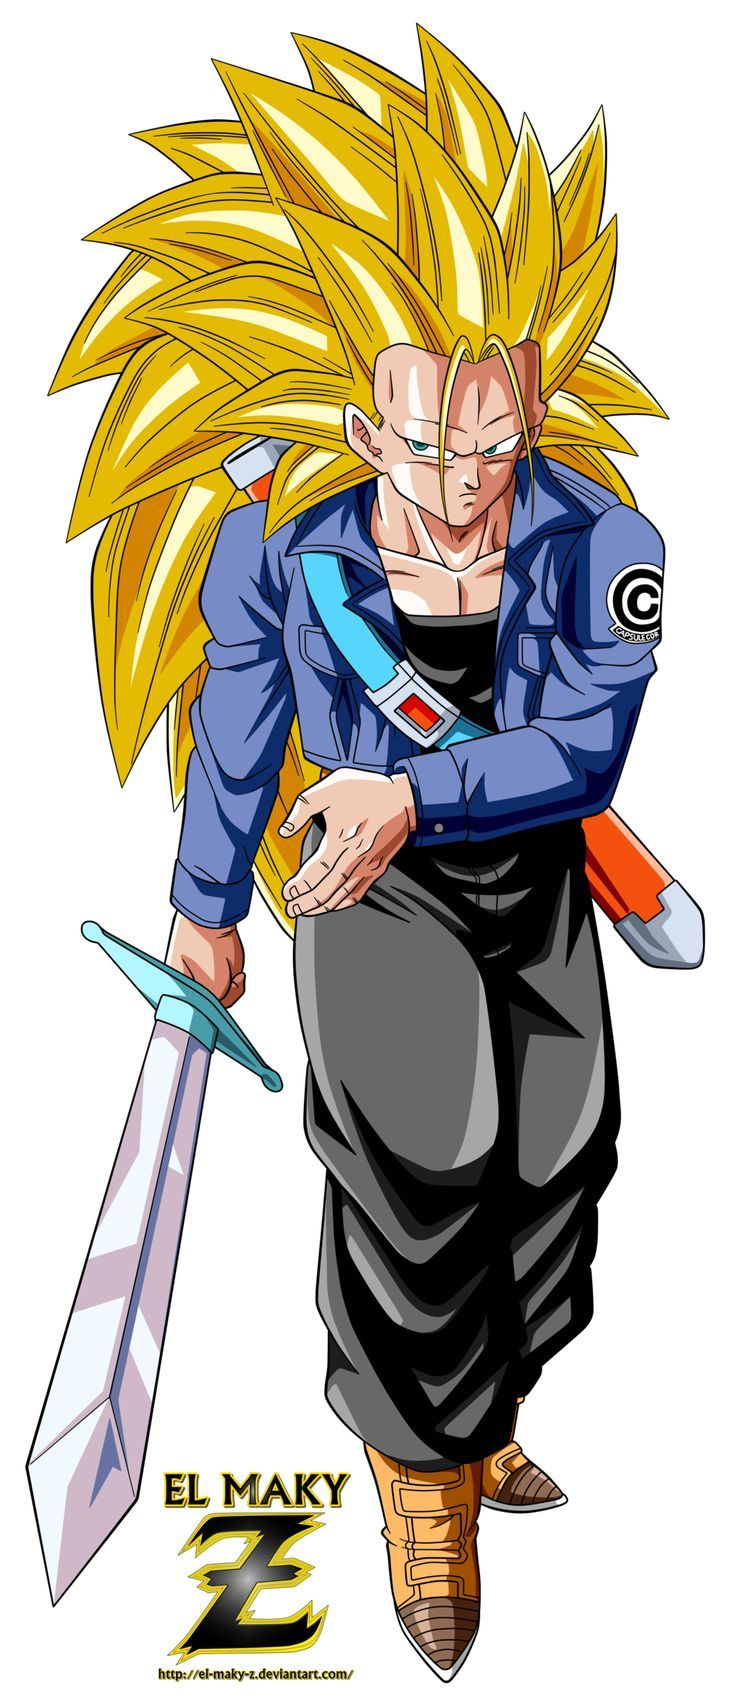 Future Trunks Super Saiyan 3 by el-maky-z.deviantart.com on @DeviantArt - Visit now for 3D Dragon Ball Z compression shirts now on sale! #dragonball #dbz #dragonballsuper